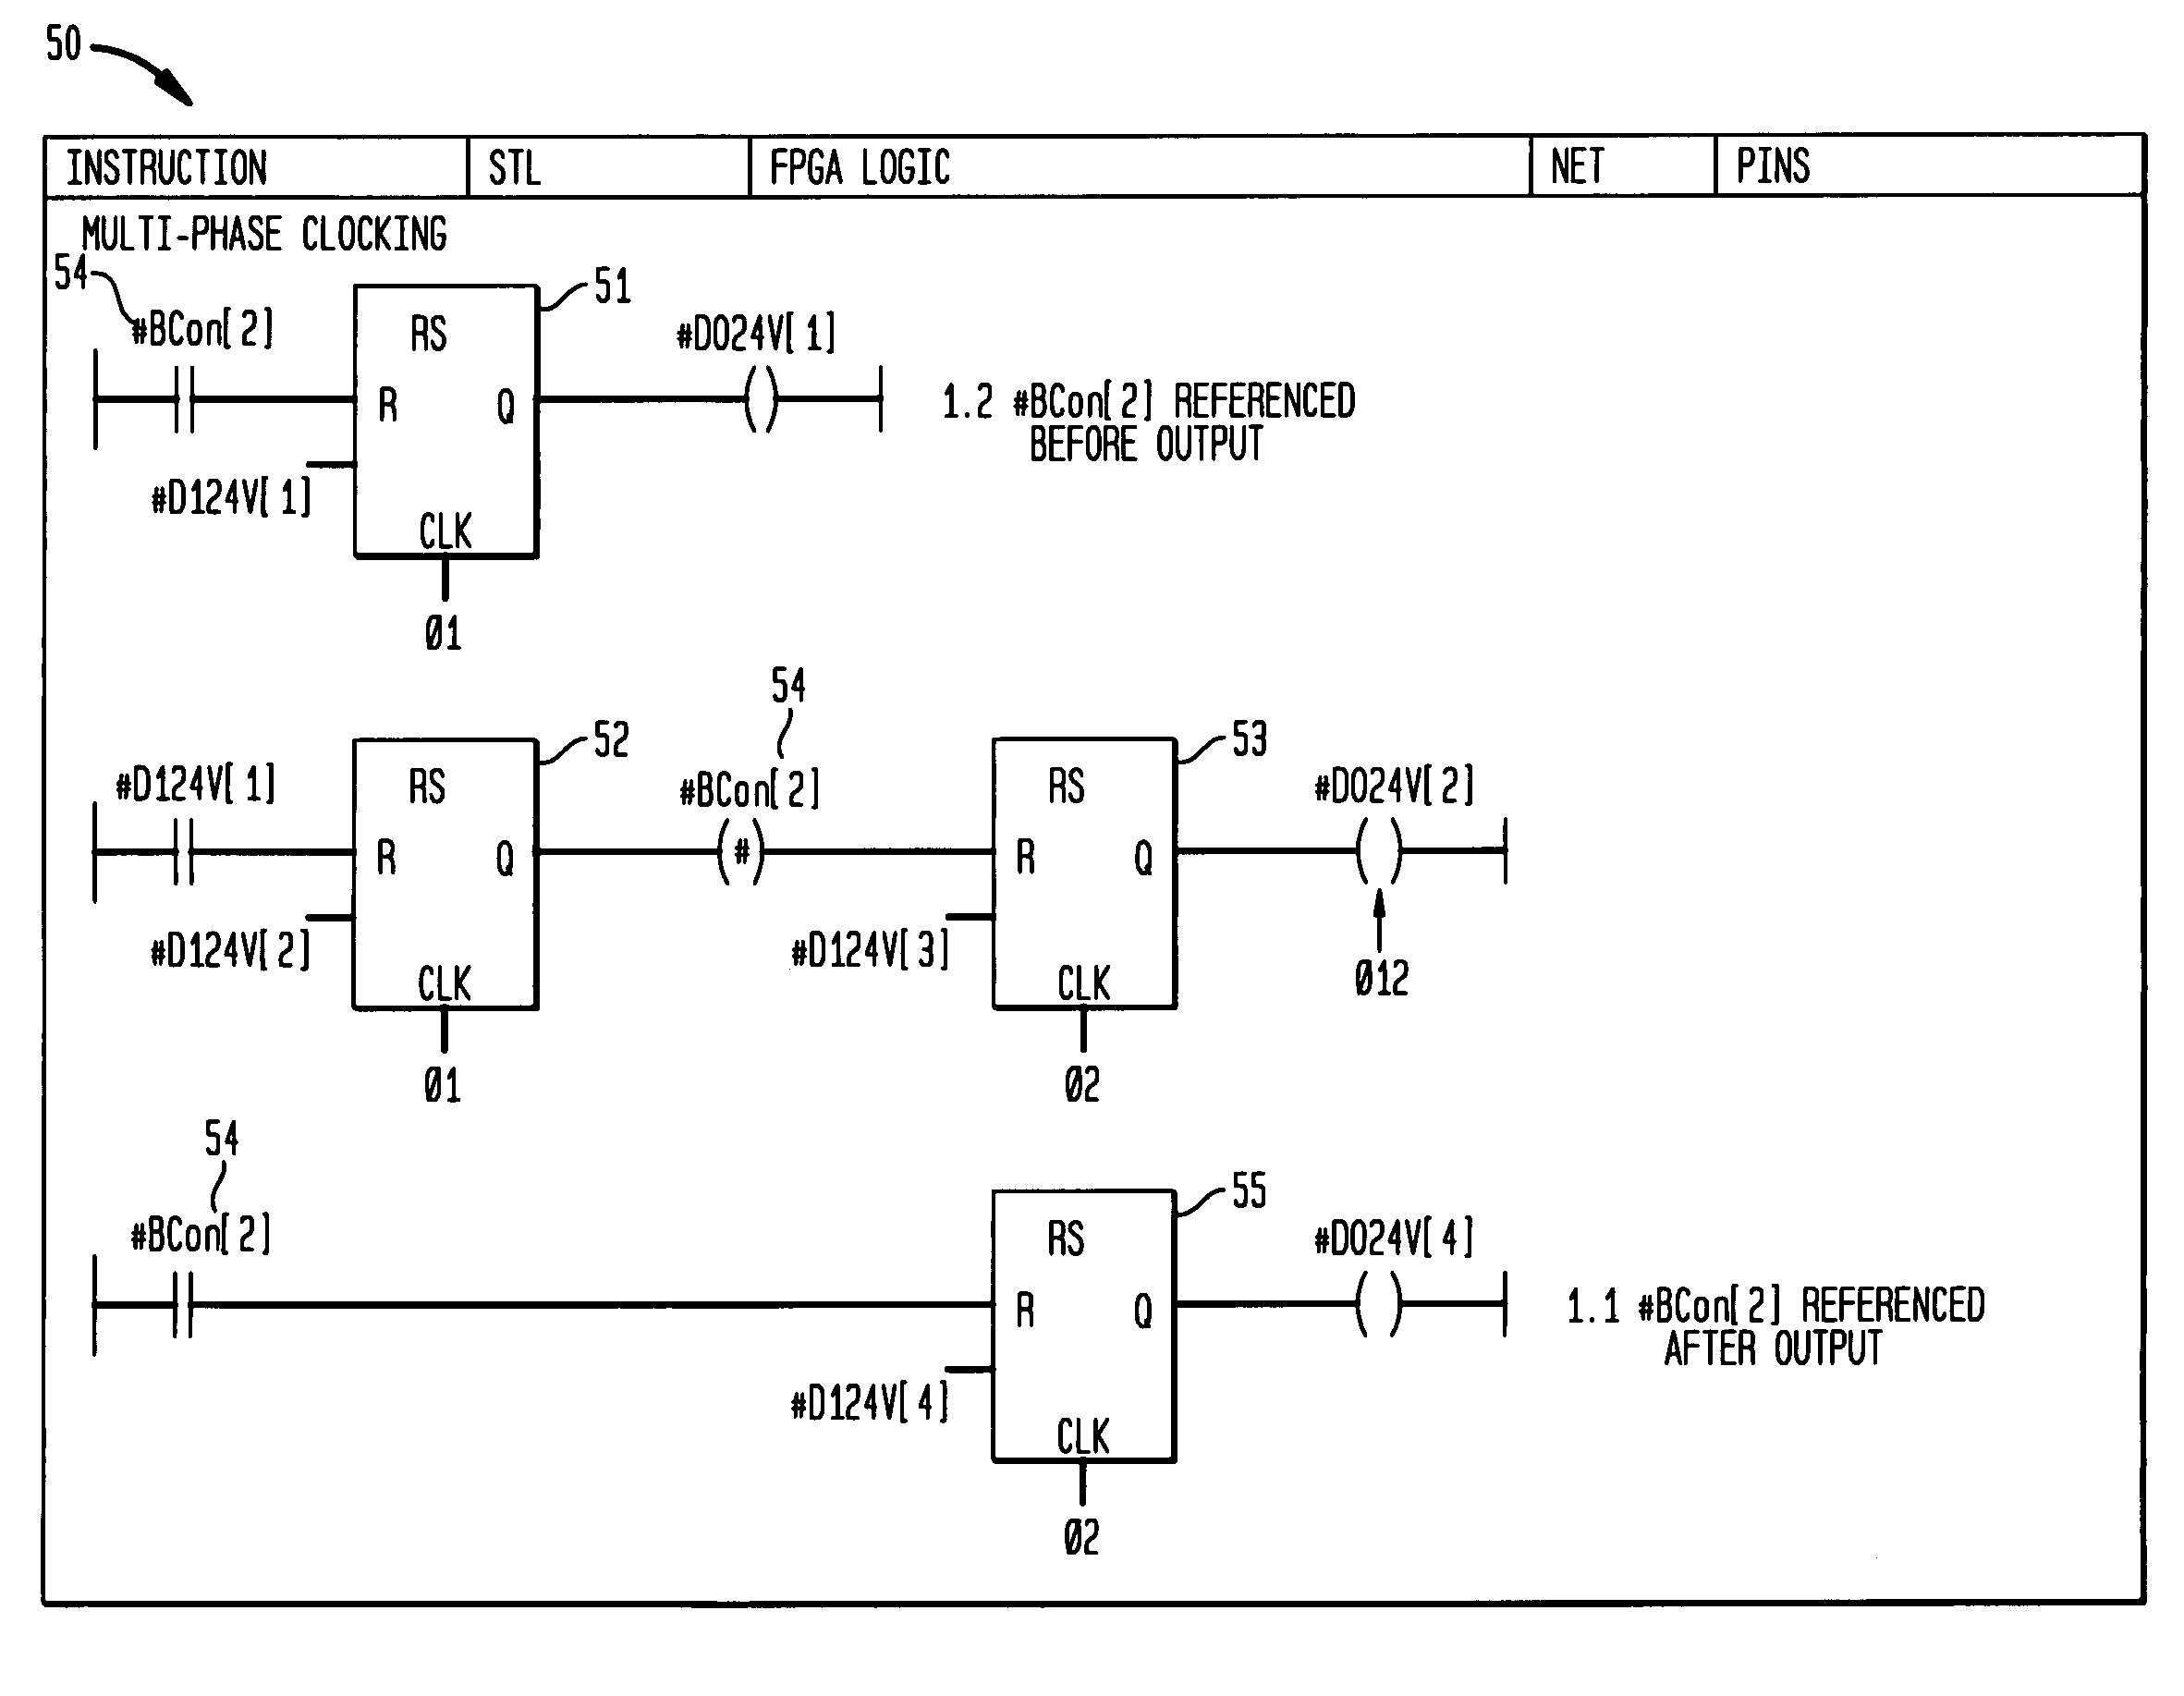 Car Parking Using Plc Ladder Diagram Ponent Relay Logic Circuits Examples Puter History